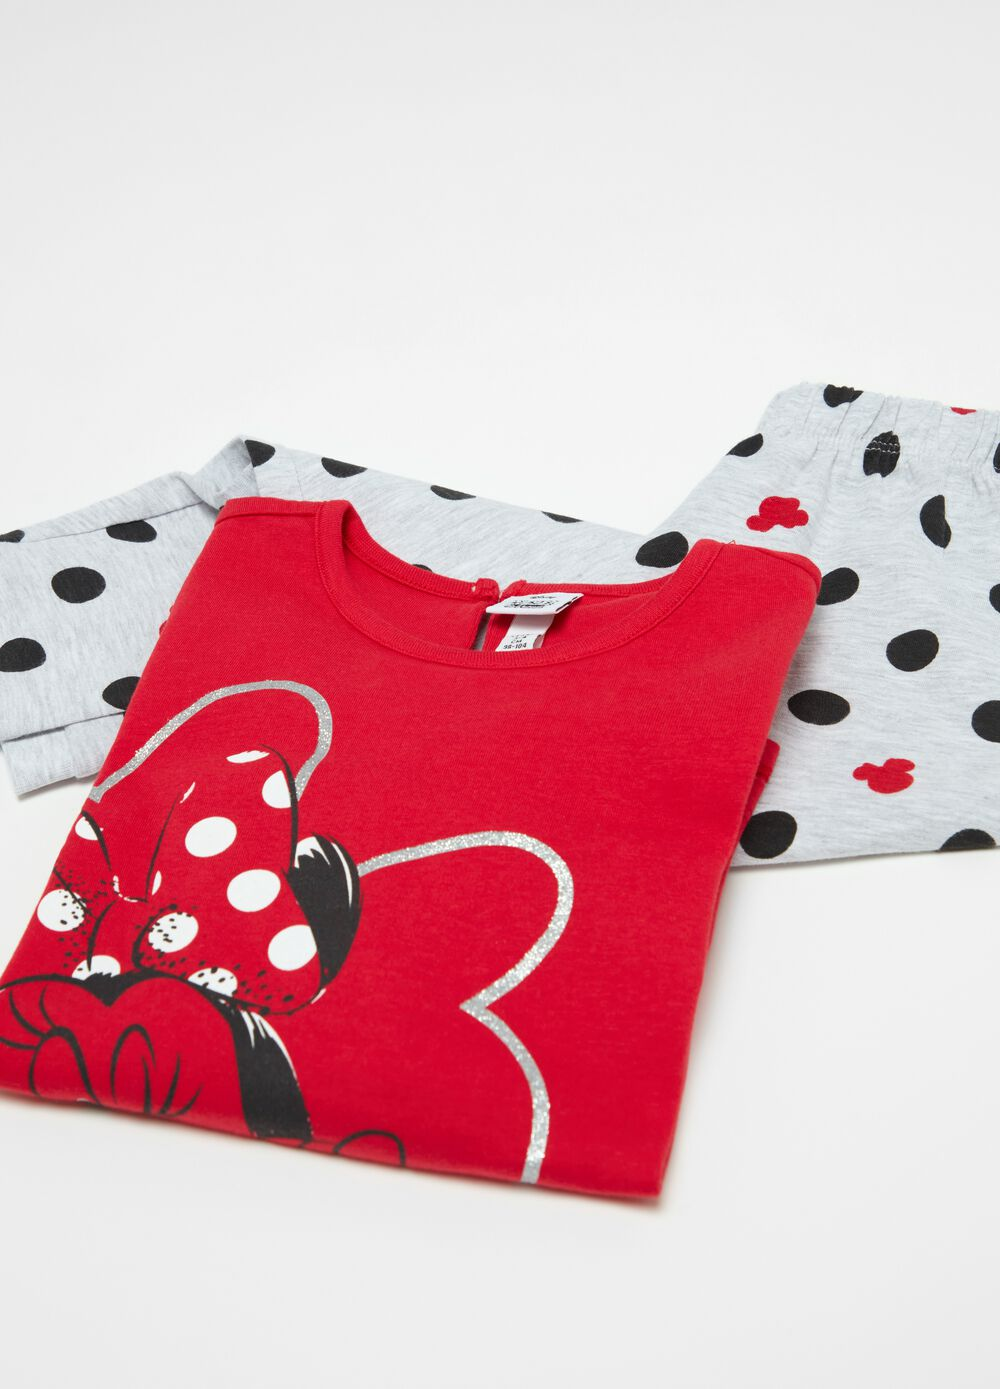 Pyjamas with Disney Minnie Mouse pattern